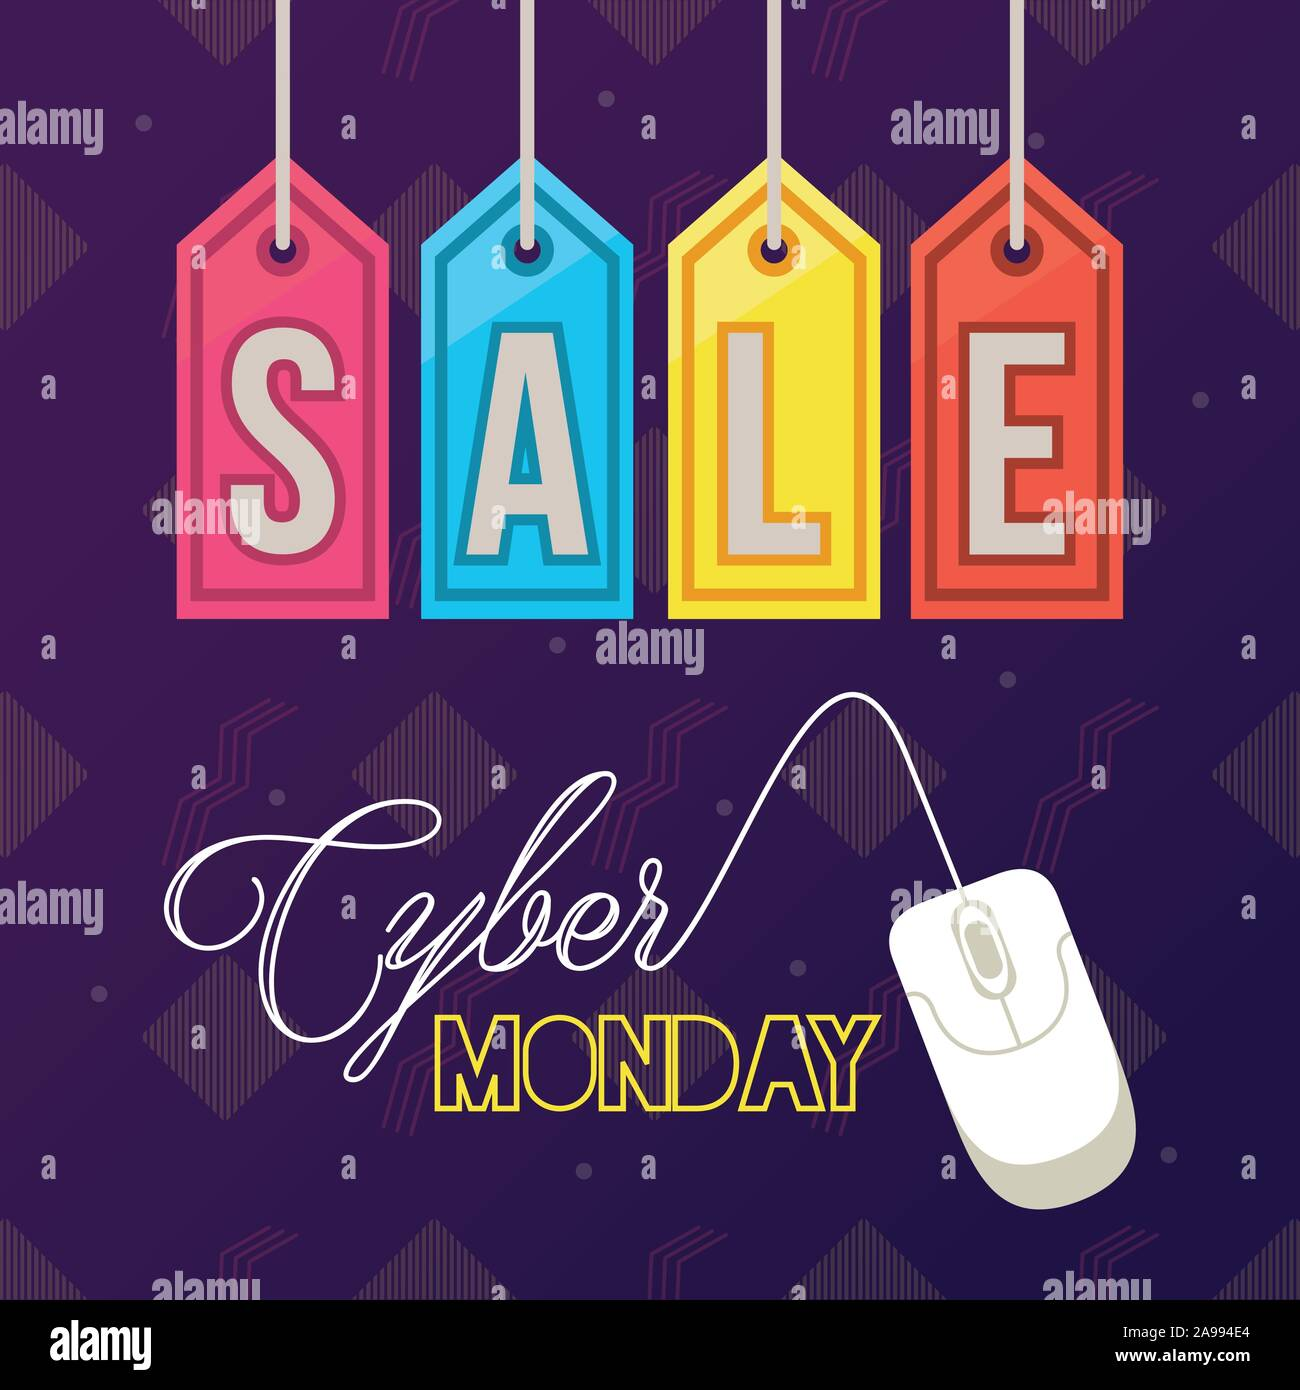 Cyber Monday Day Poster With Mouse And Tags Stock Vector Image Art Alamy